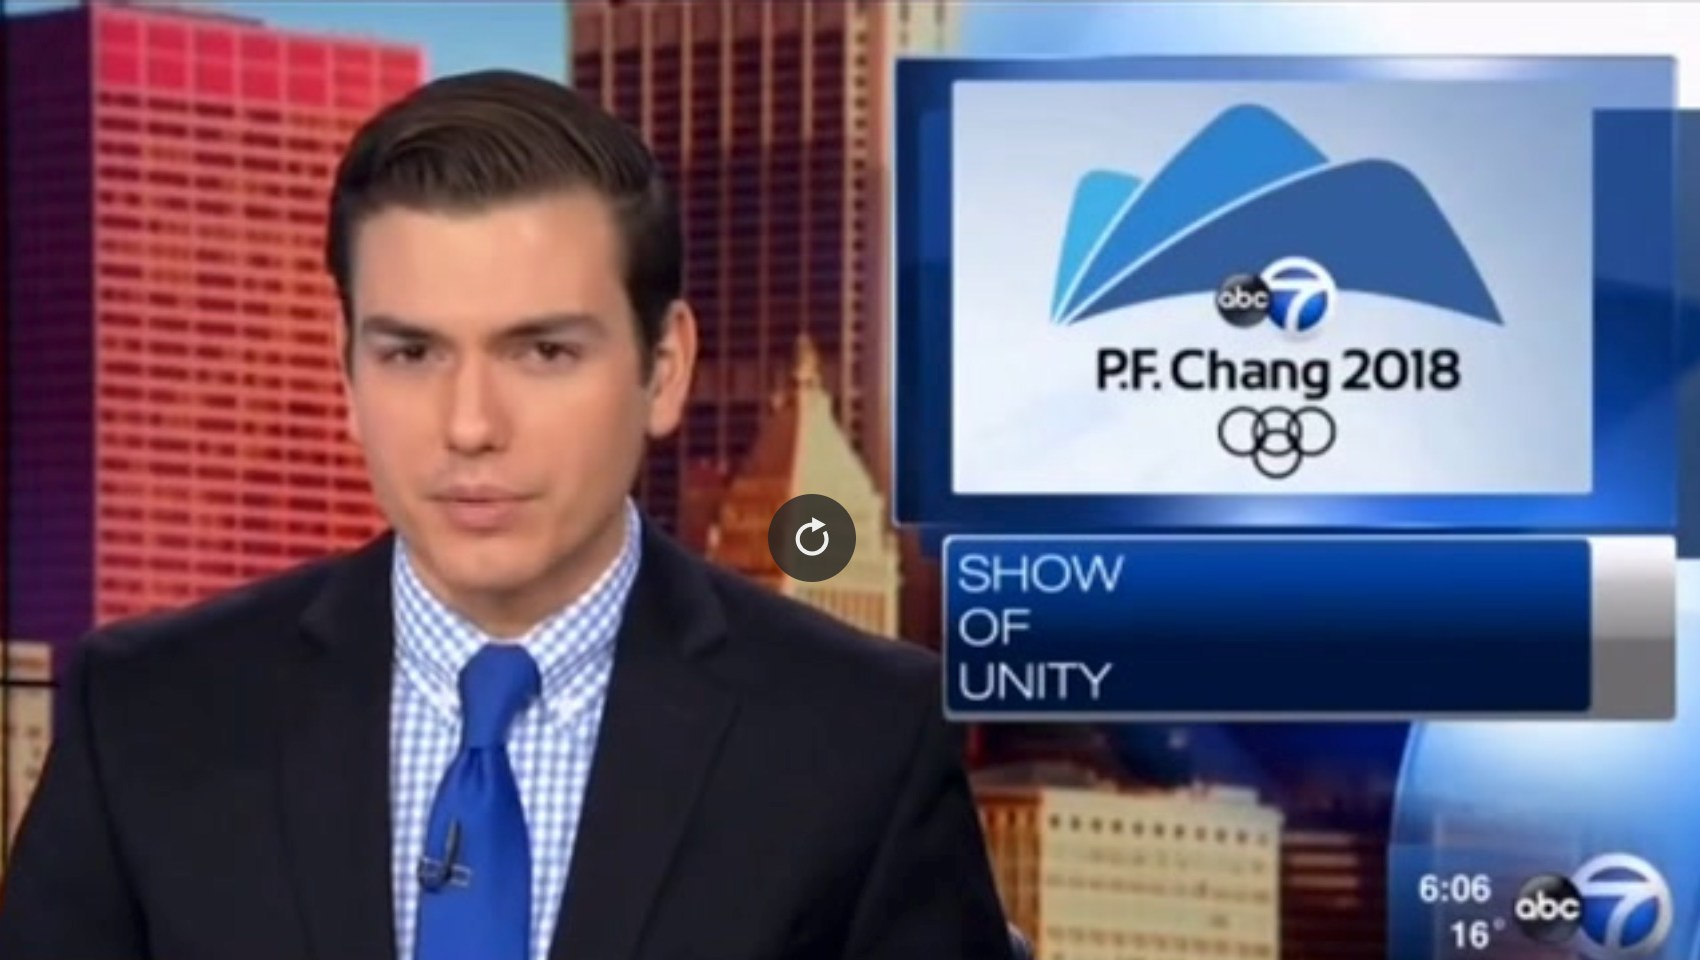 Network confuses PyeongChang with P.F. Chang